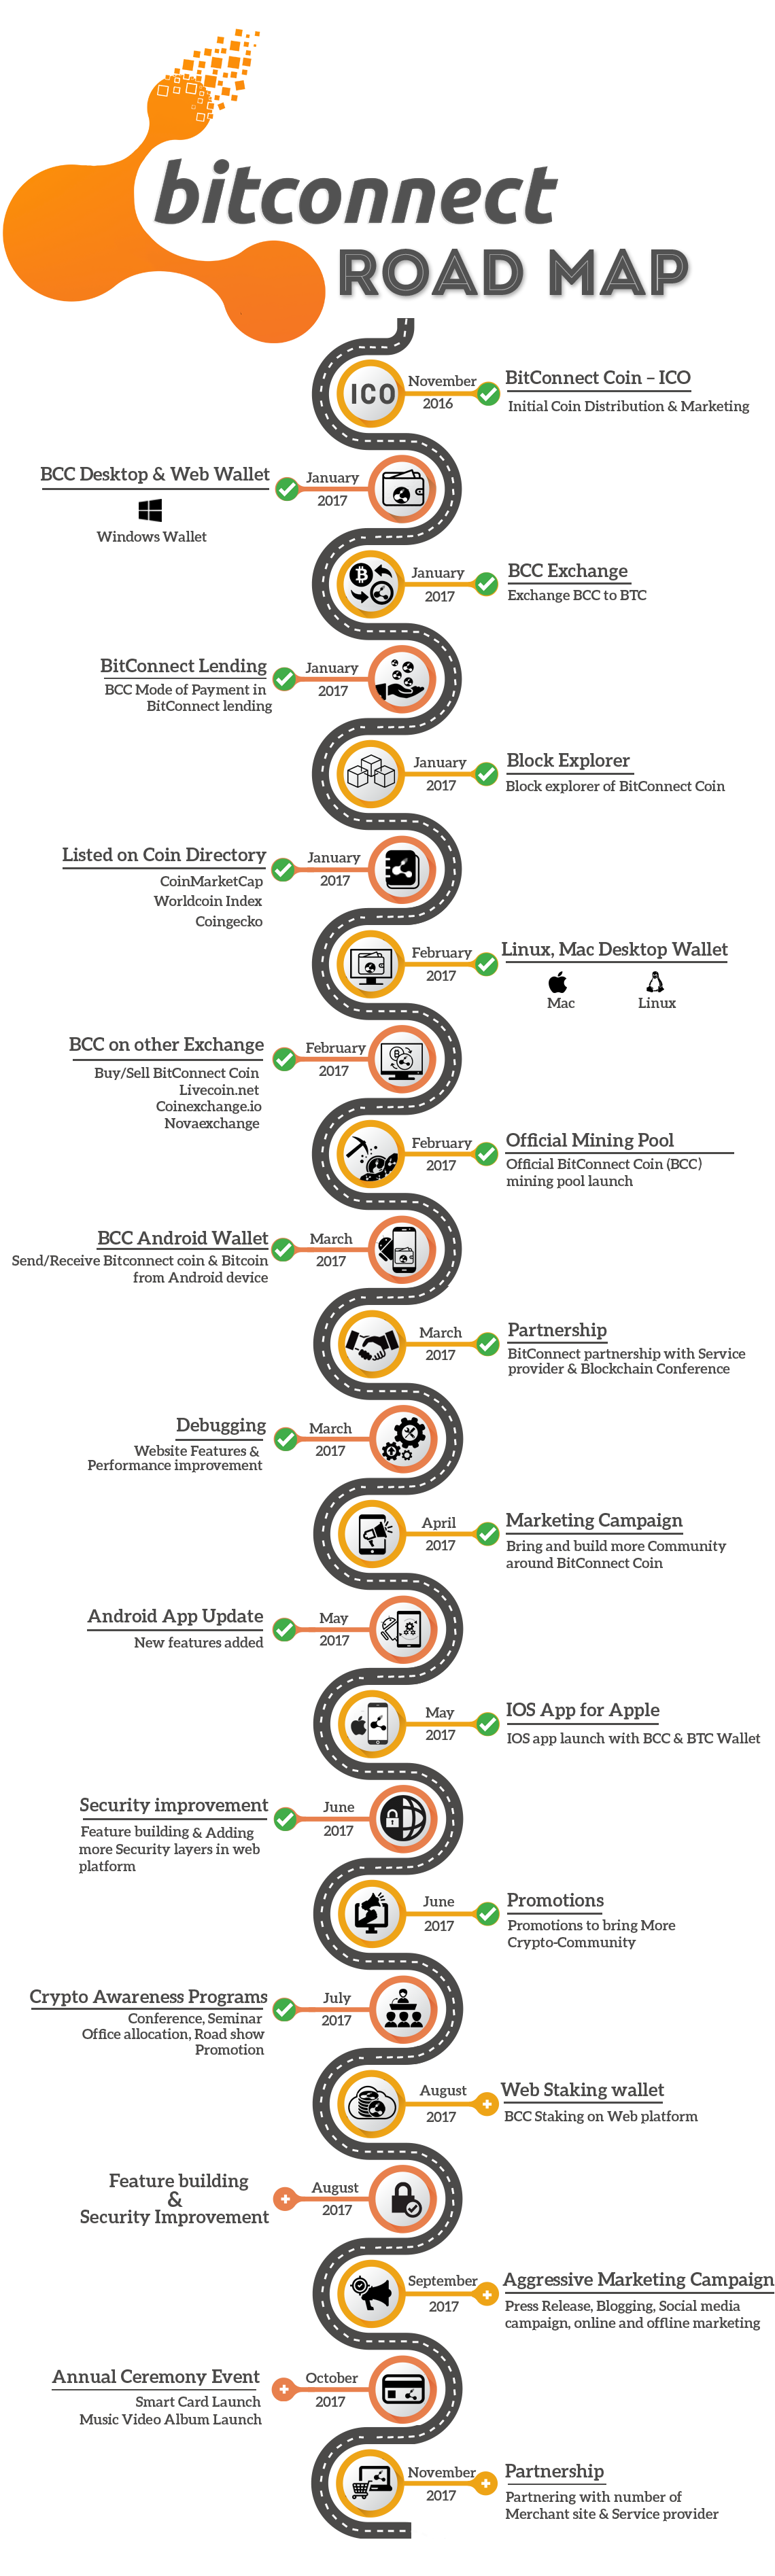 BitConnect_Road_map.png (1140×3790)